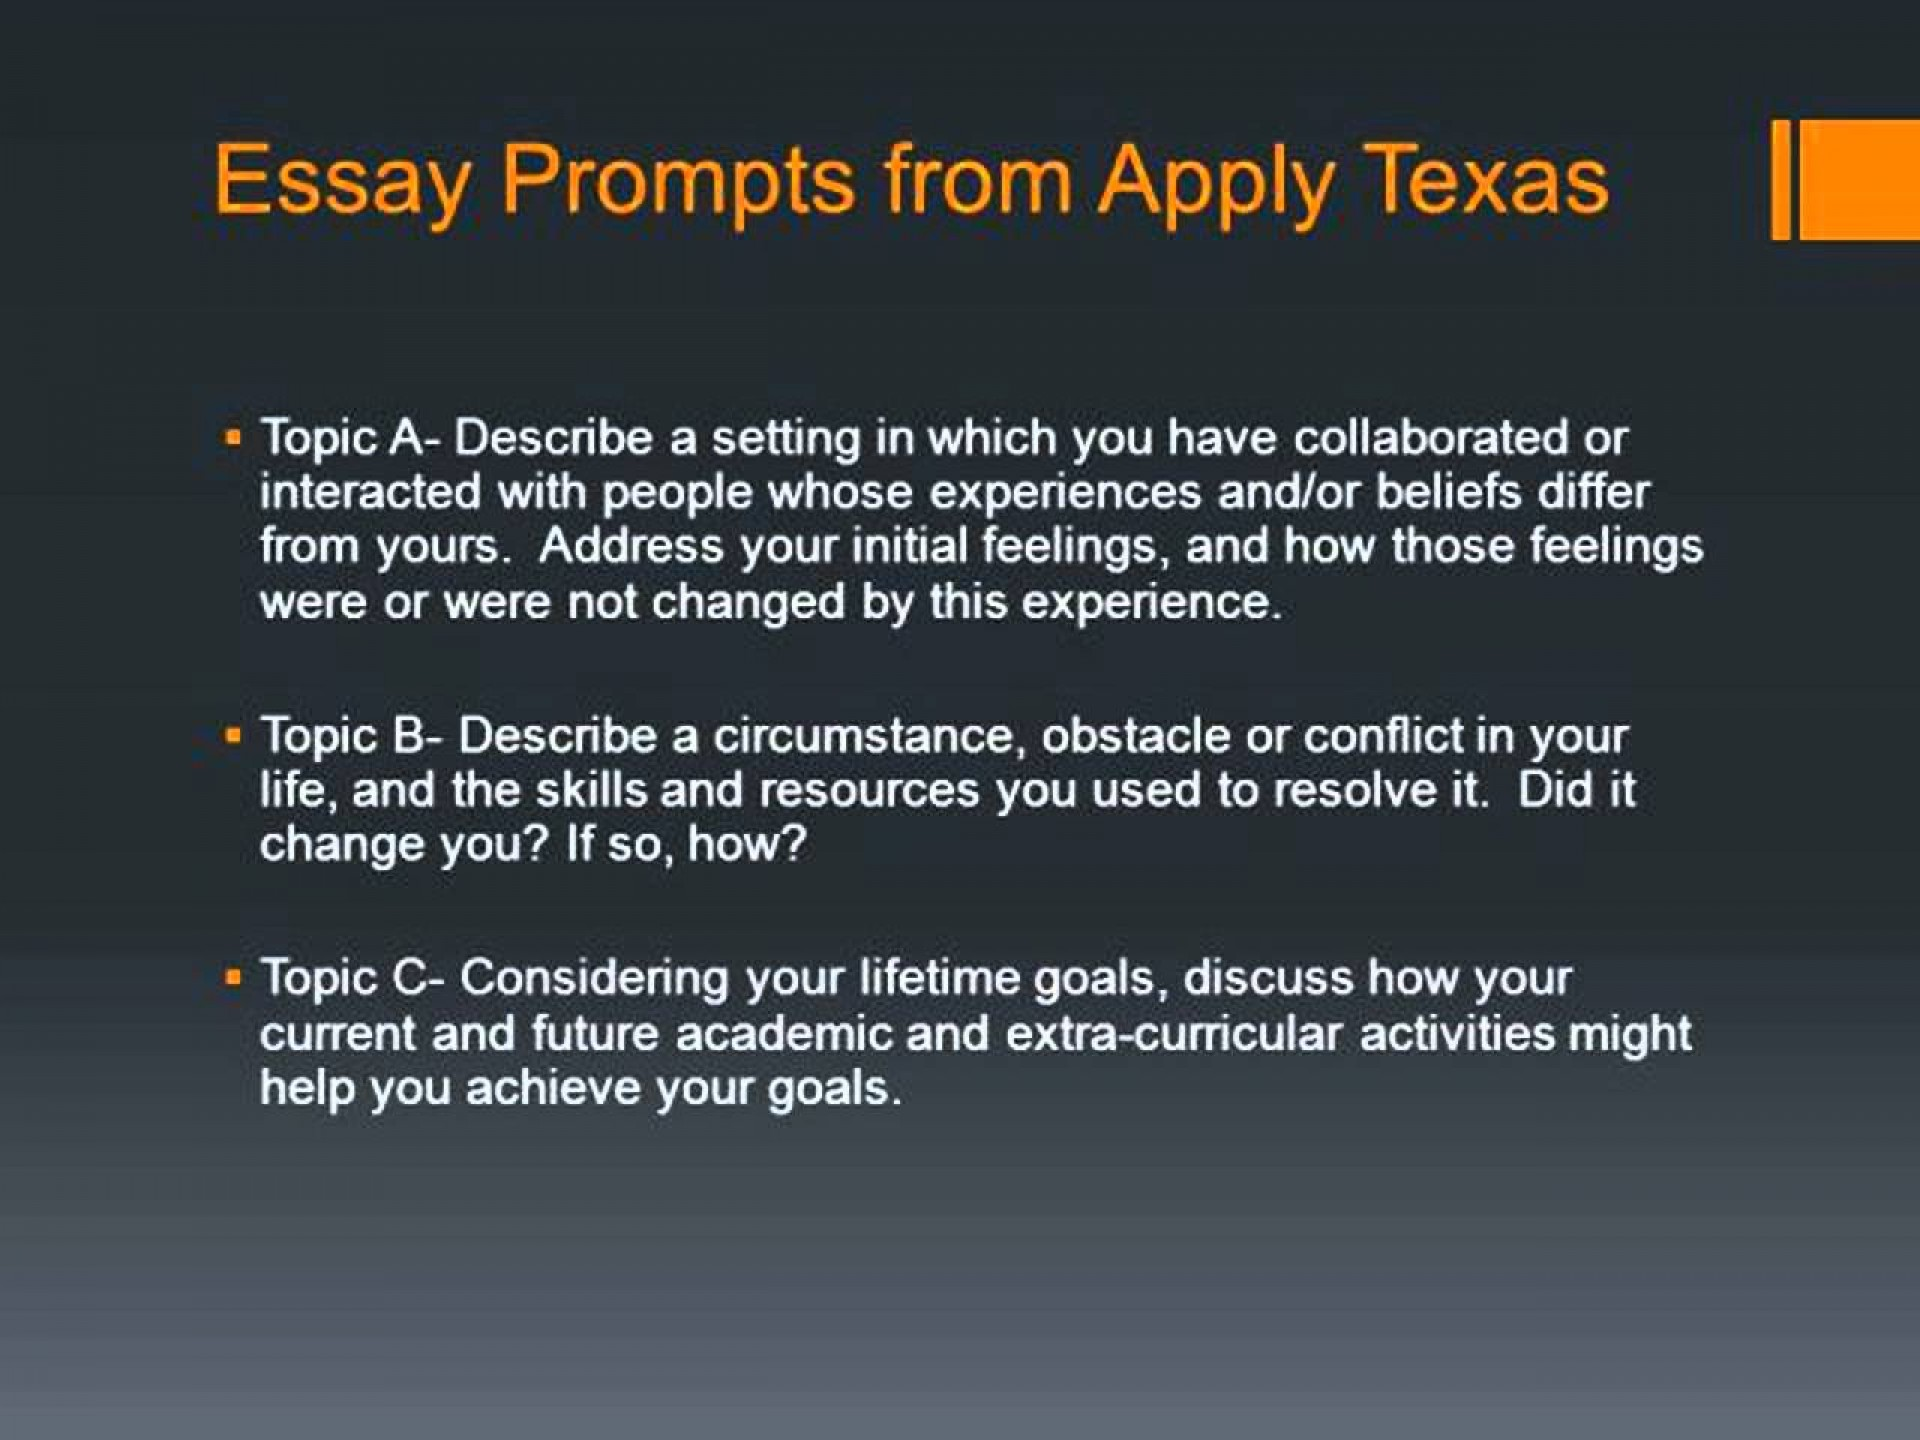 001 Essay Example Apply Texas Prompts Youtube Topic Examples Maxresde Archaicawful Topics 2018-19 C B 1920